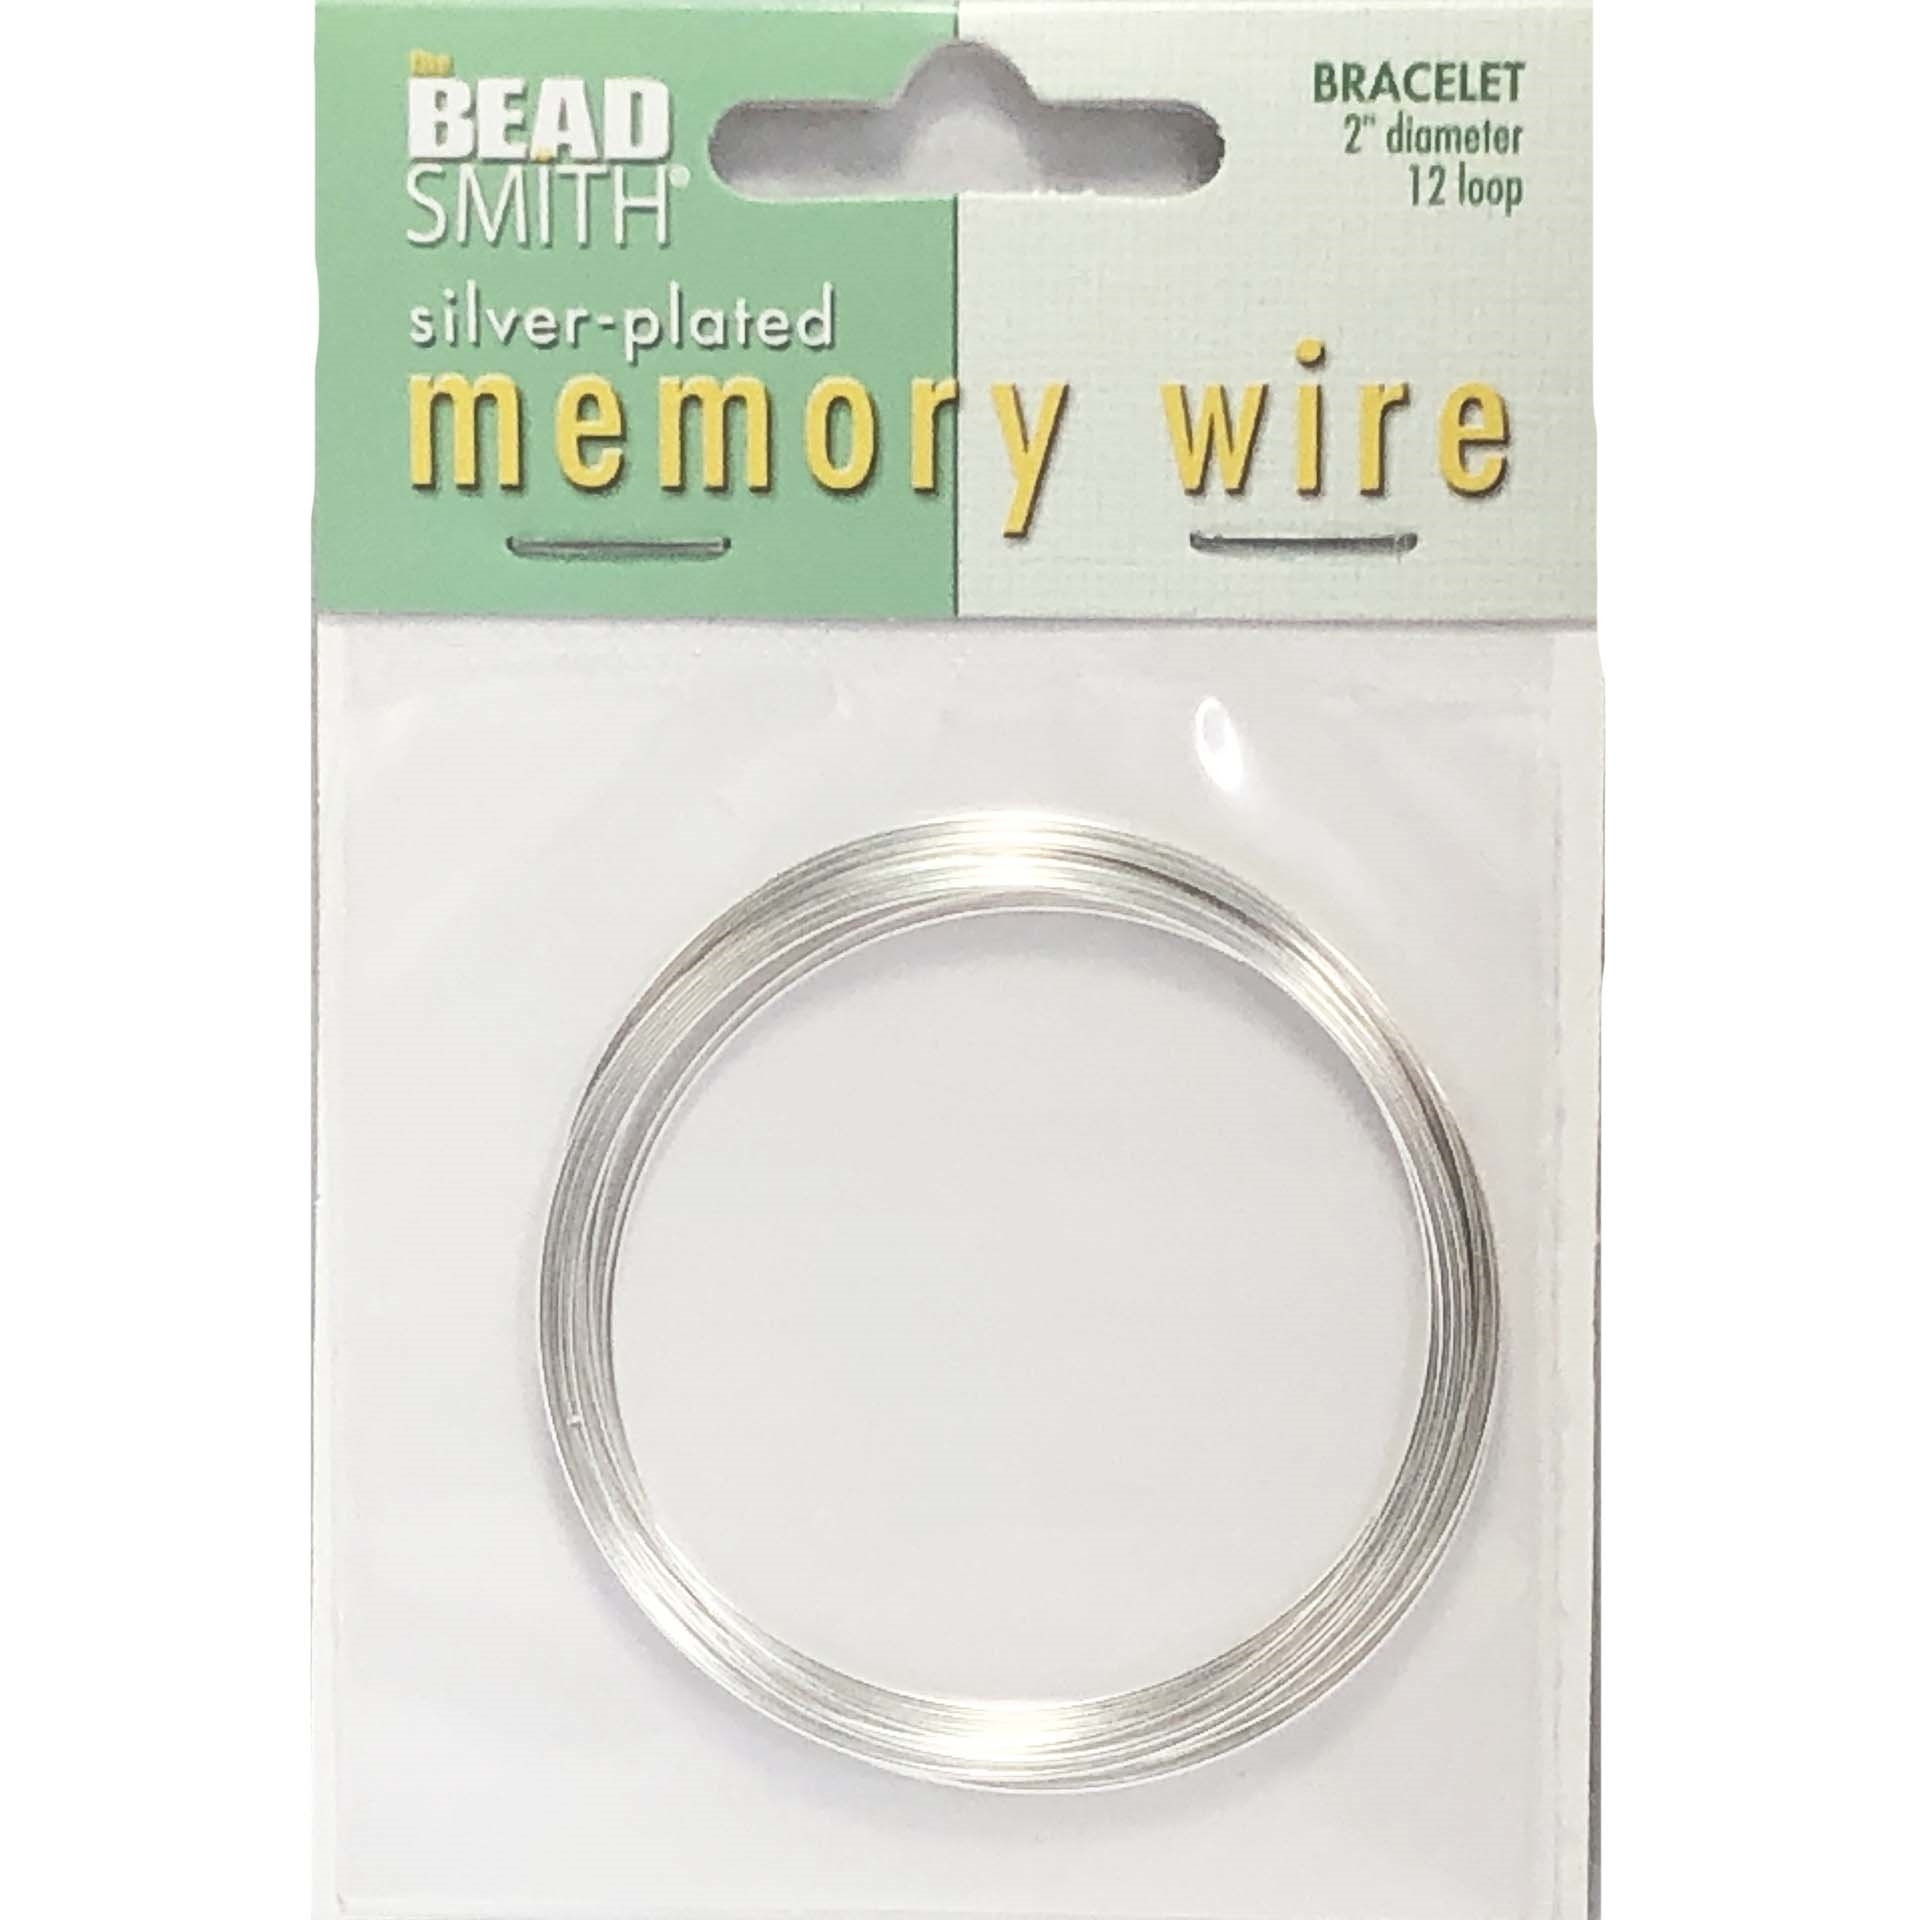 Round Memory Wire Silver Plate Bracelet Making 2 Inch